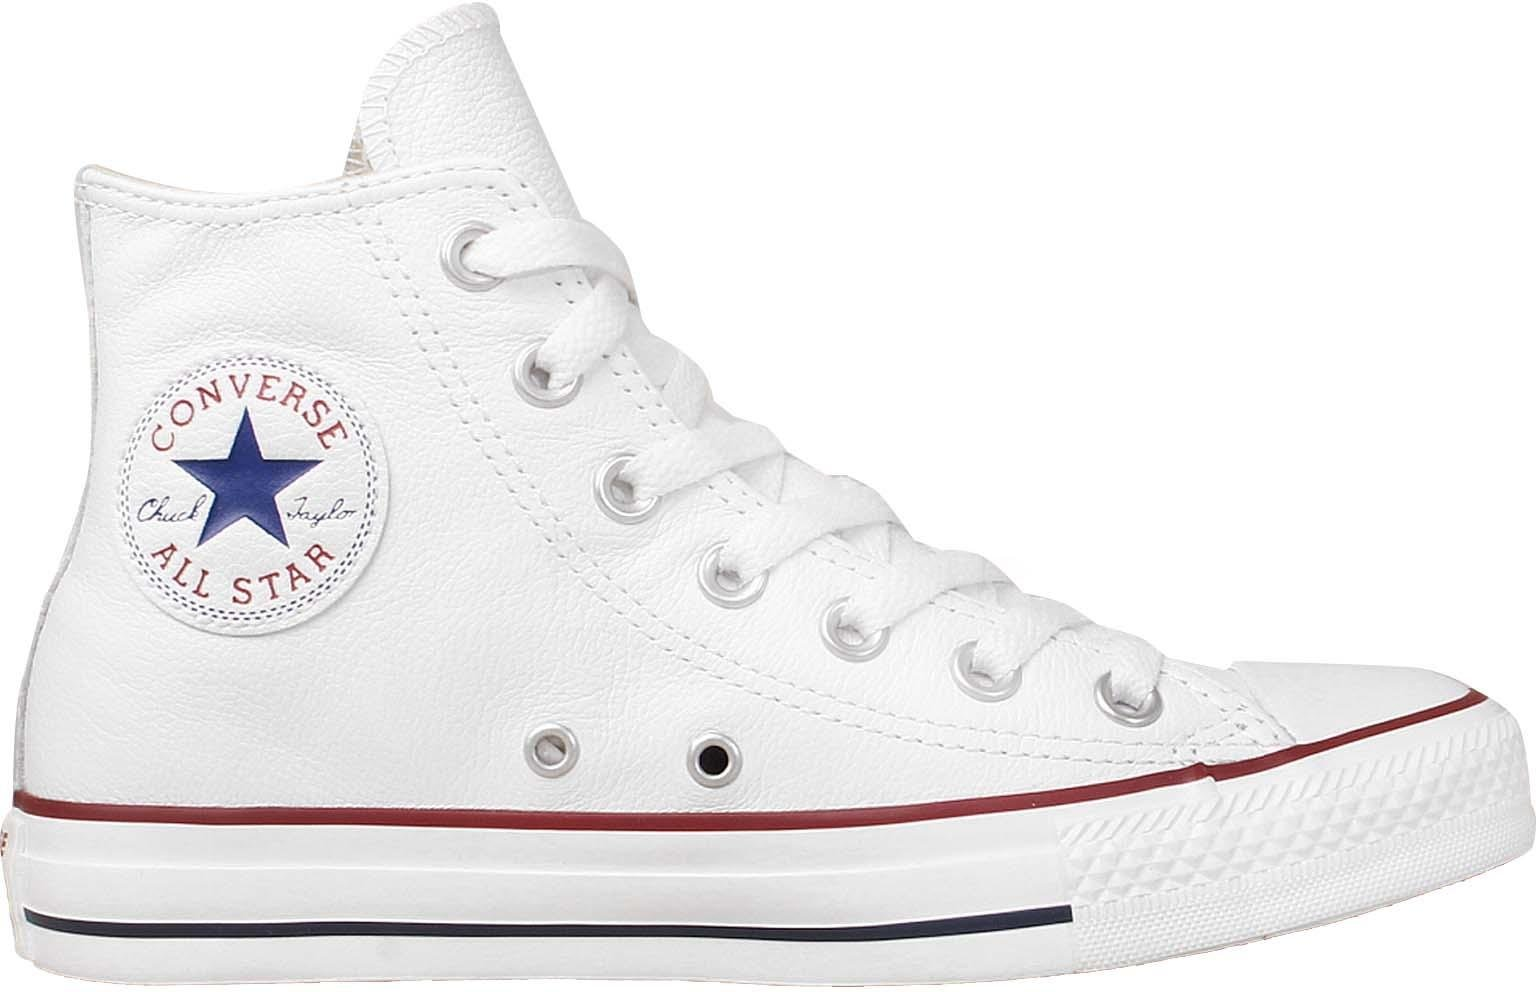 Chaussures Converse chuck taylor as high leather